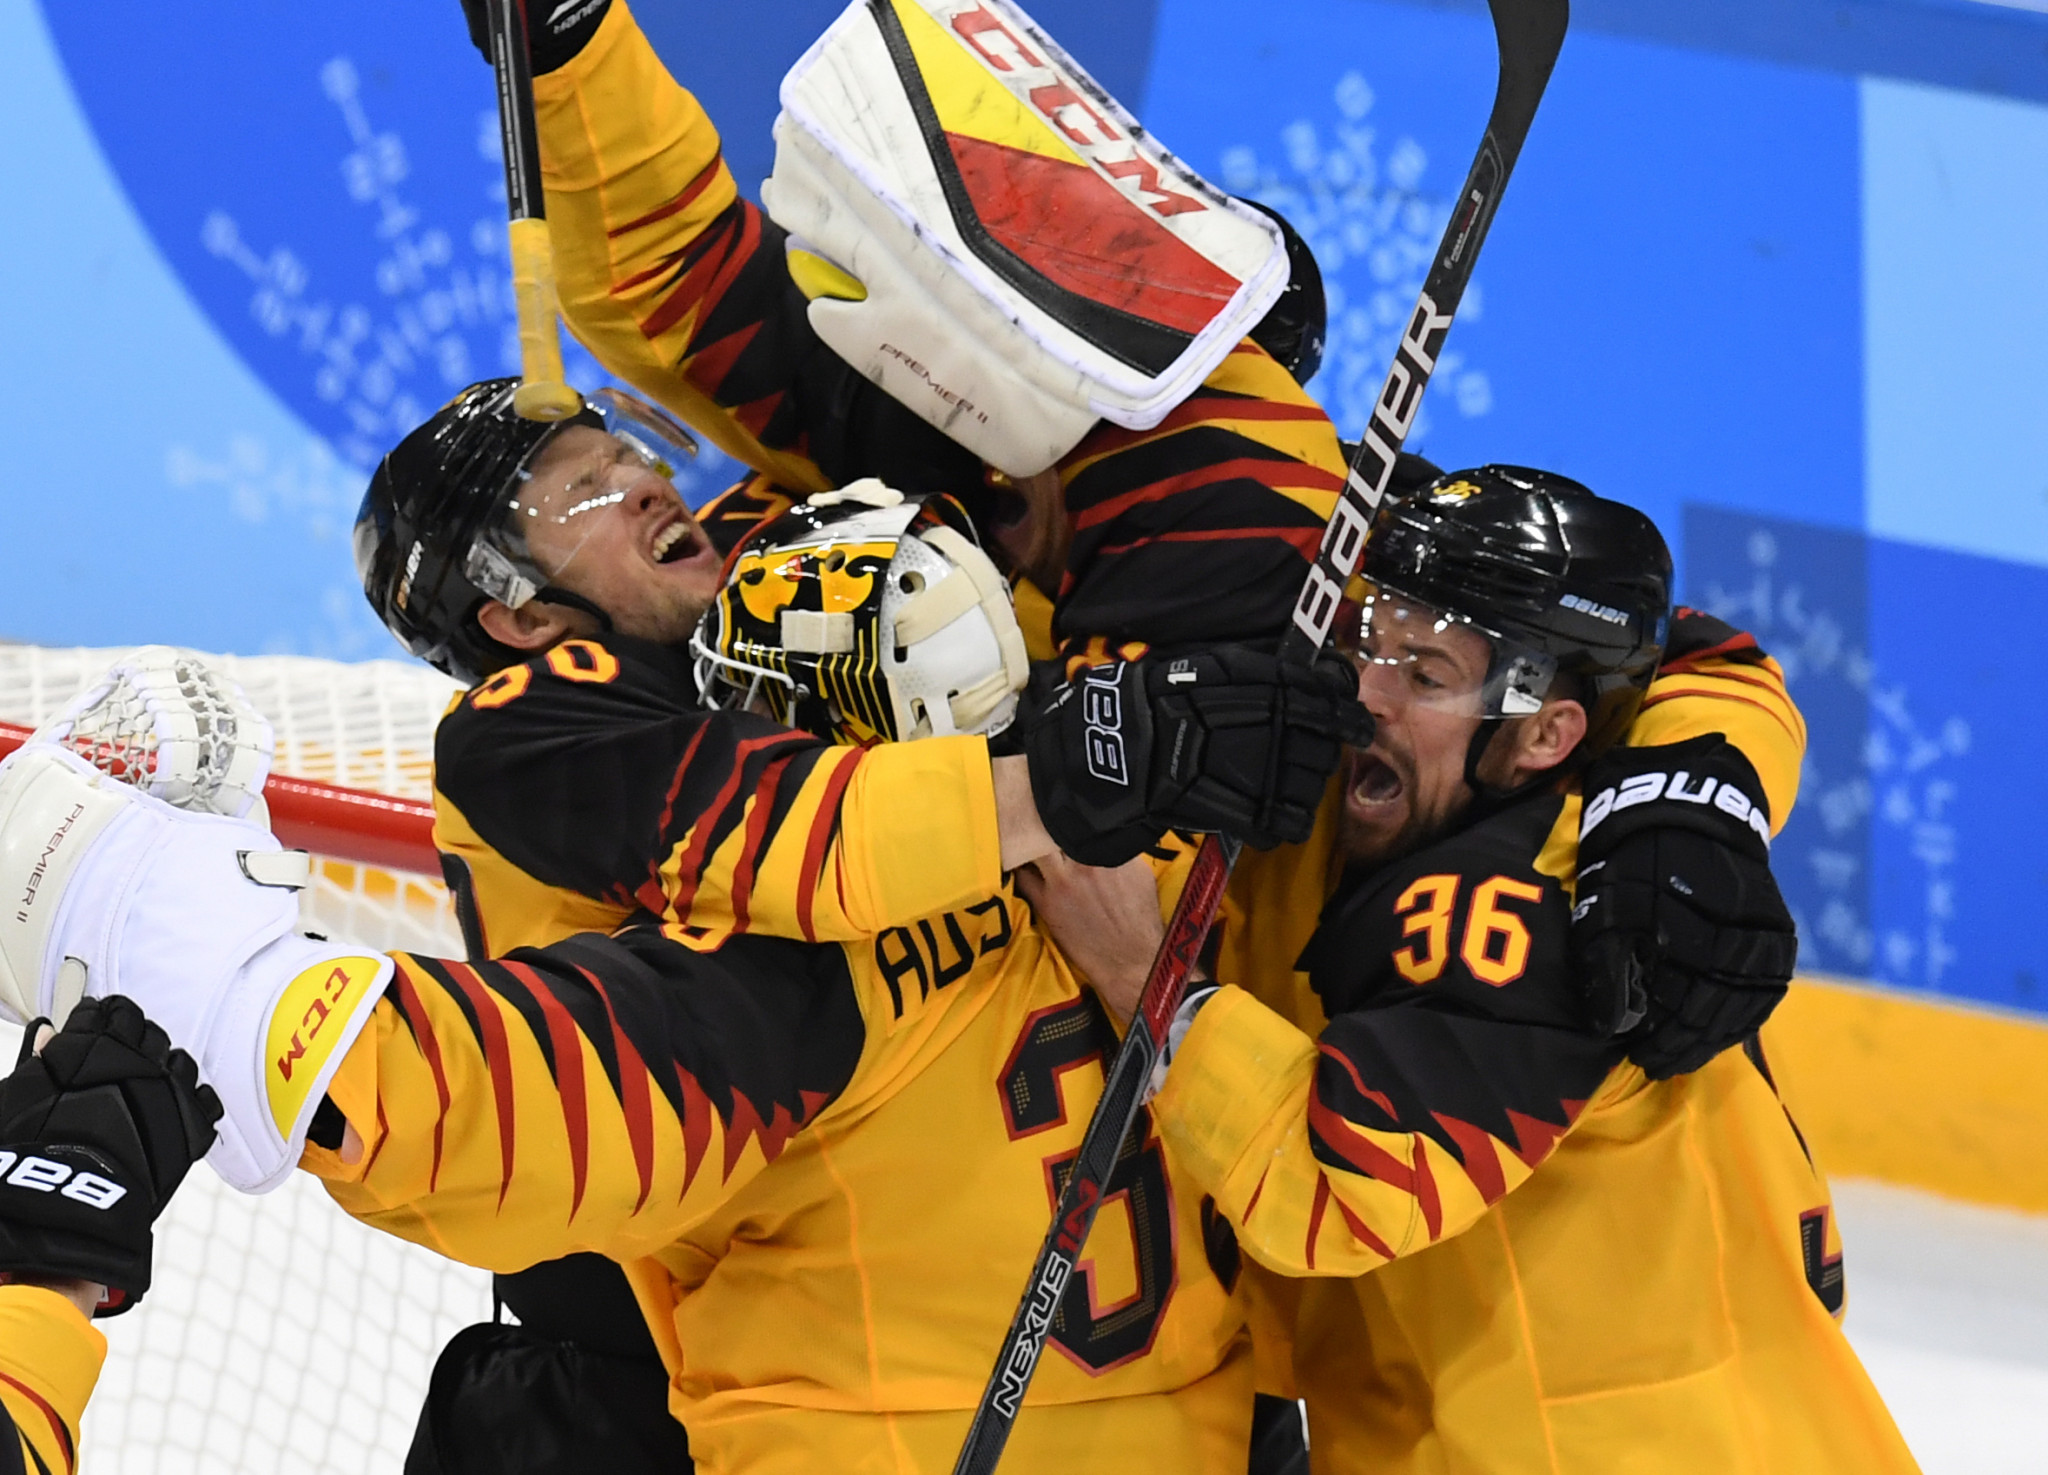 Germany won a shock silver medal at the Pyeongchang 2018 Winter Olympics ©Getty Images